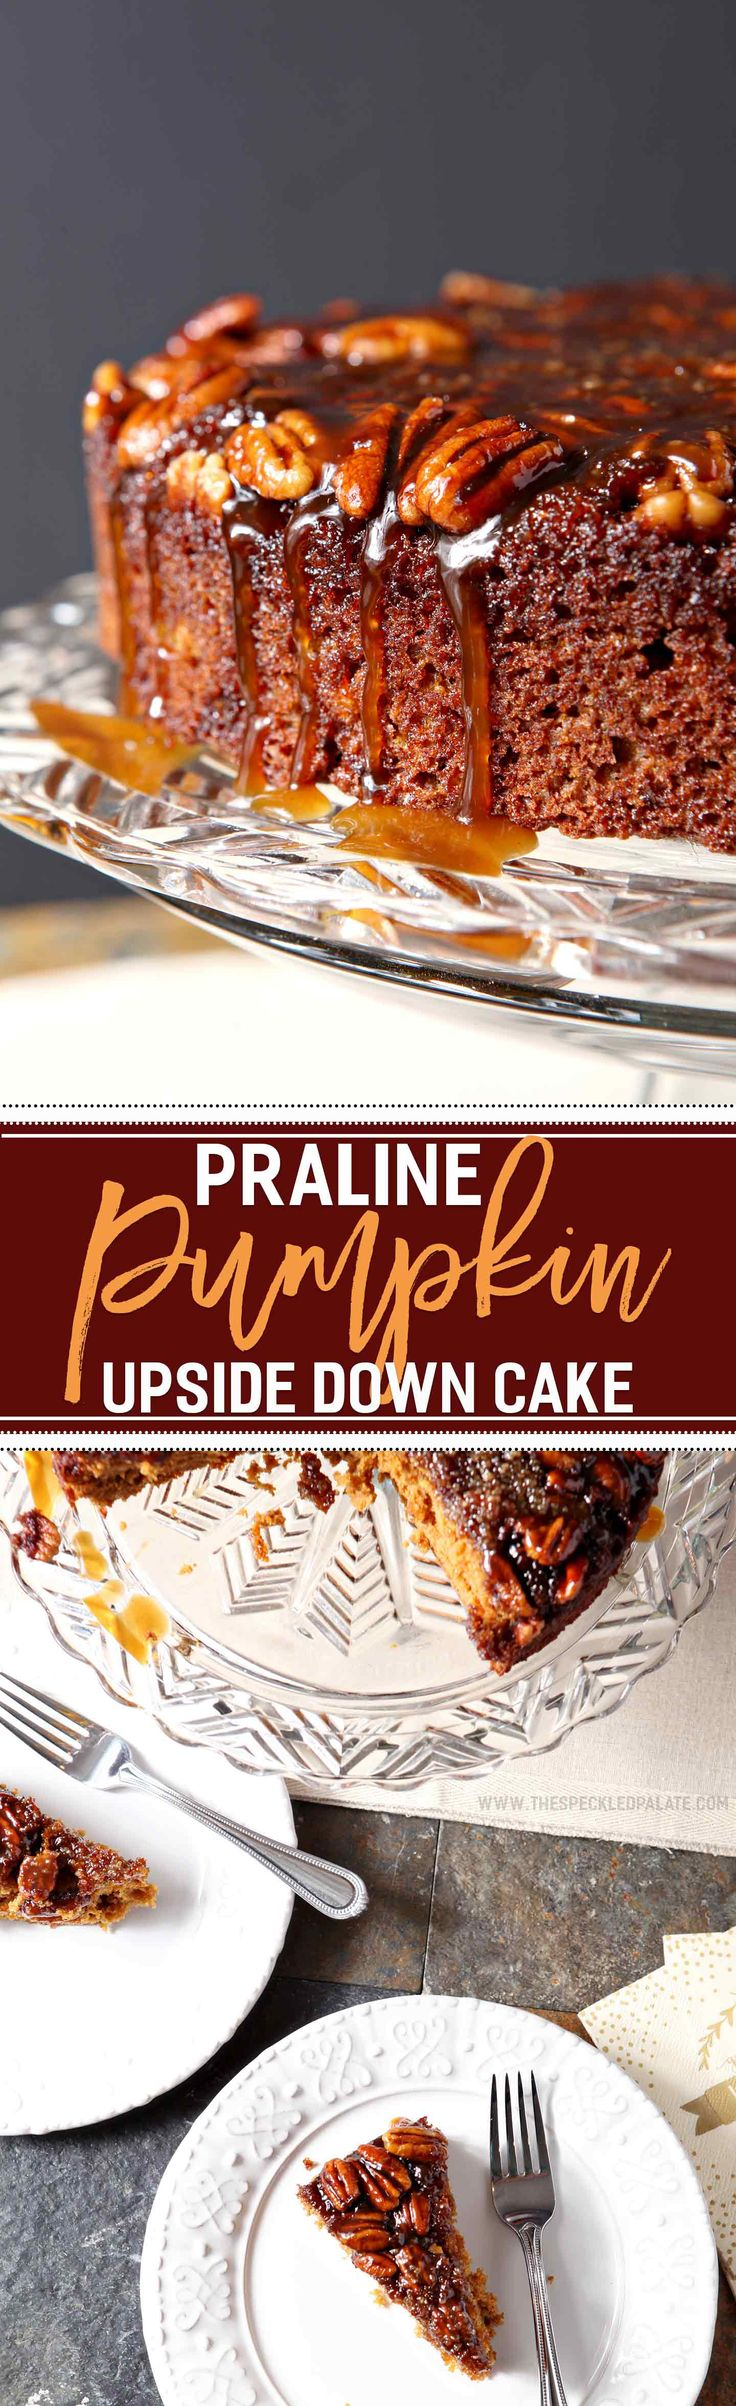 Combine two favorite fall flavors to make the ULTIMATE Thanksgiving dessert: Praline Pumpkin Upside Down Cake! Bourbon pralines create the base/top of this cake, then pecans add decoration. Once the pecans are in place, pour the thick pumpkin cake batter into the cake pan, and bake! Flip after removing from the oven and free from the pan, then drizzle with bourbon caramel sauce for the finishing touch. This cake is decadently moist and perfect!